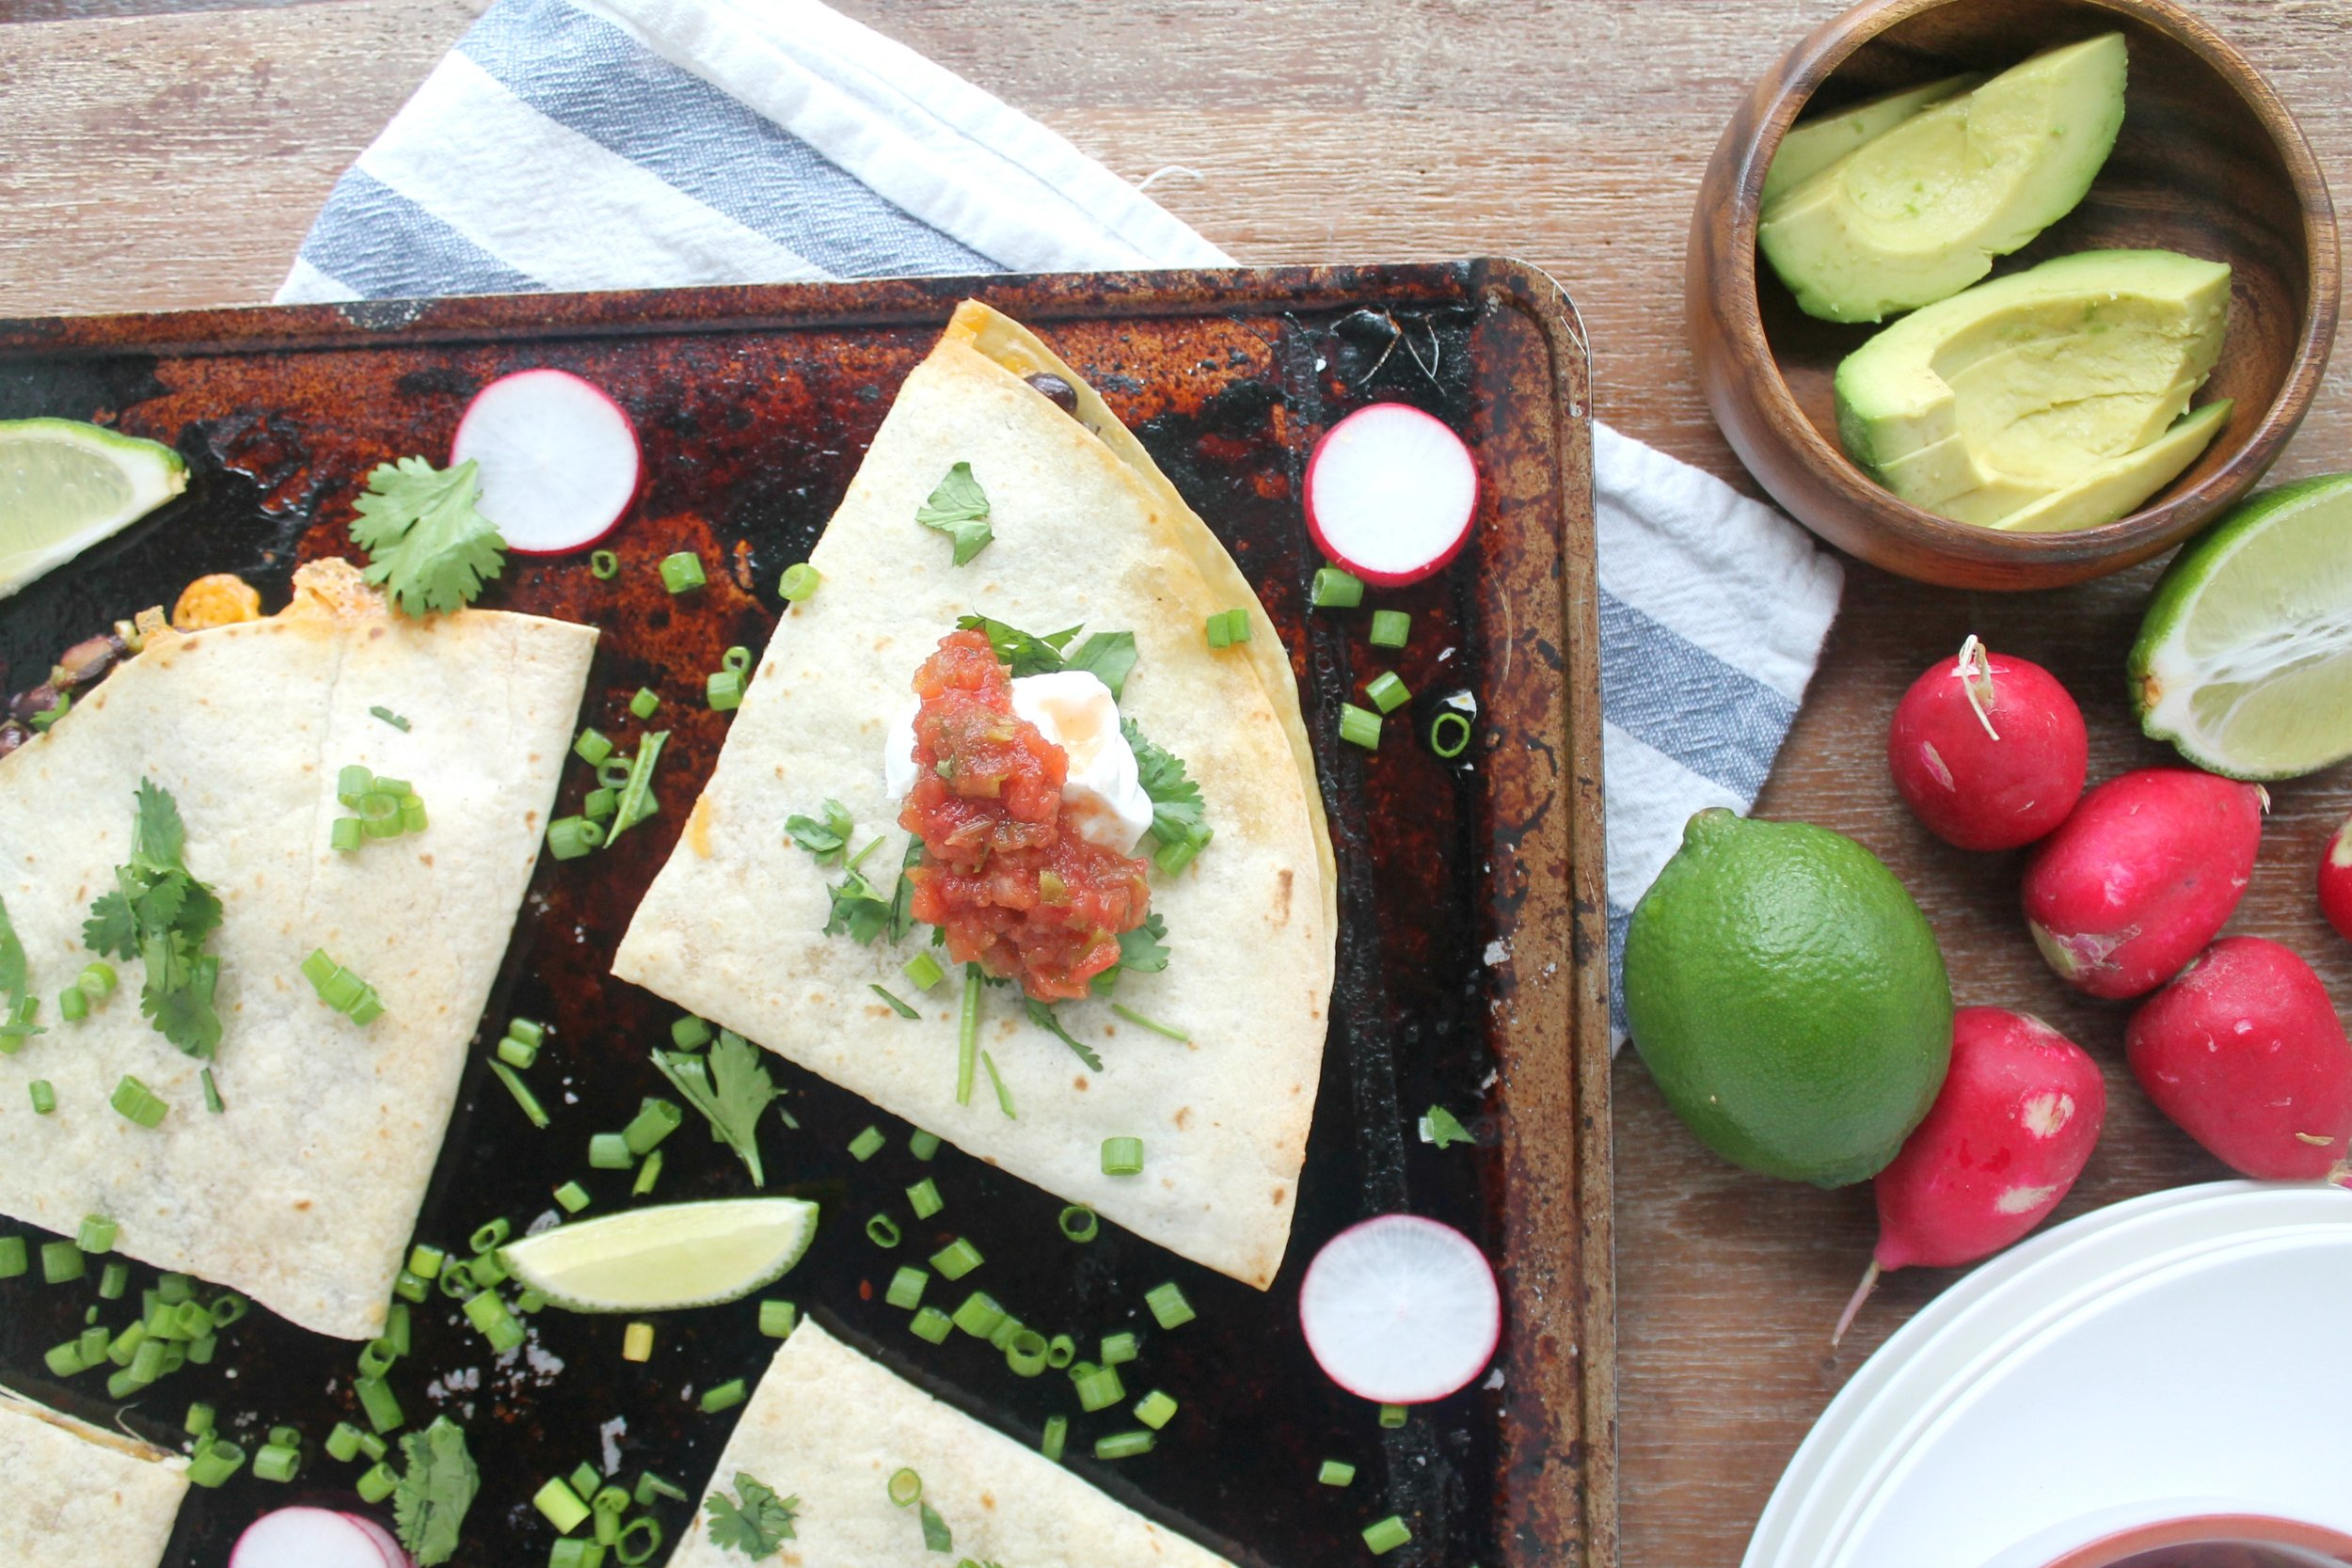 30-minute sheet pan dinners: nineteen easy dinner options   Cheesy Sheet Pan Quesadillas  by Jenny Shae Rawn, dietitian and blogger at My Cape Cod Kitchen